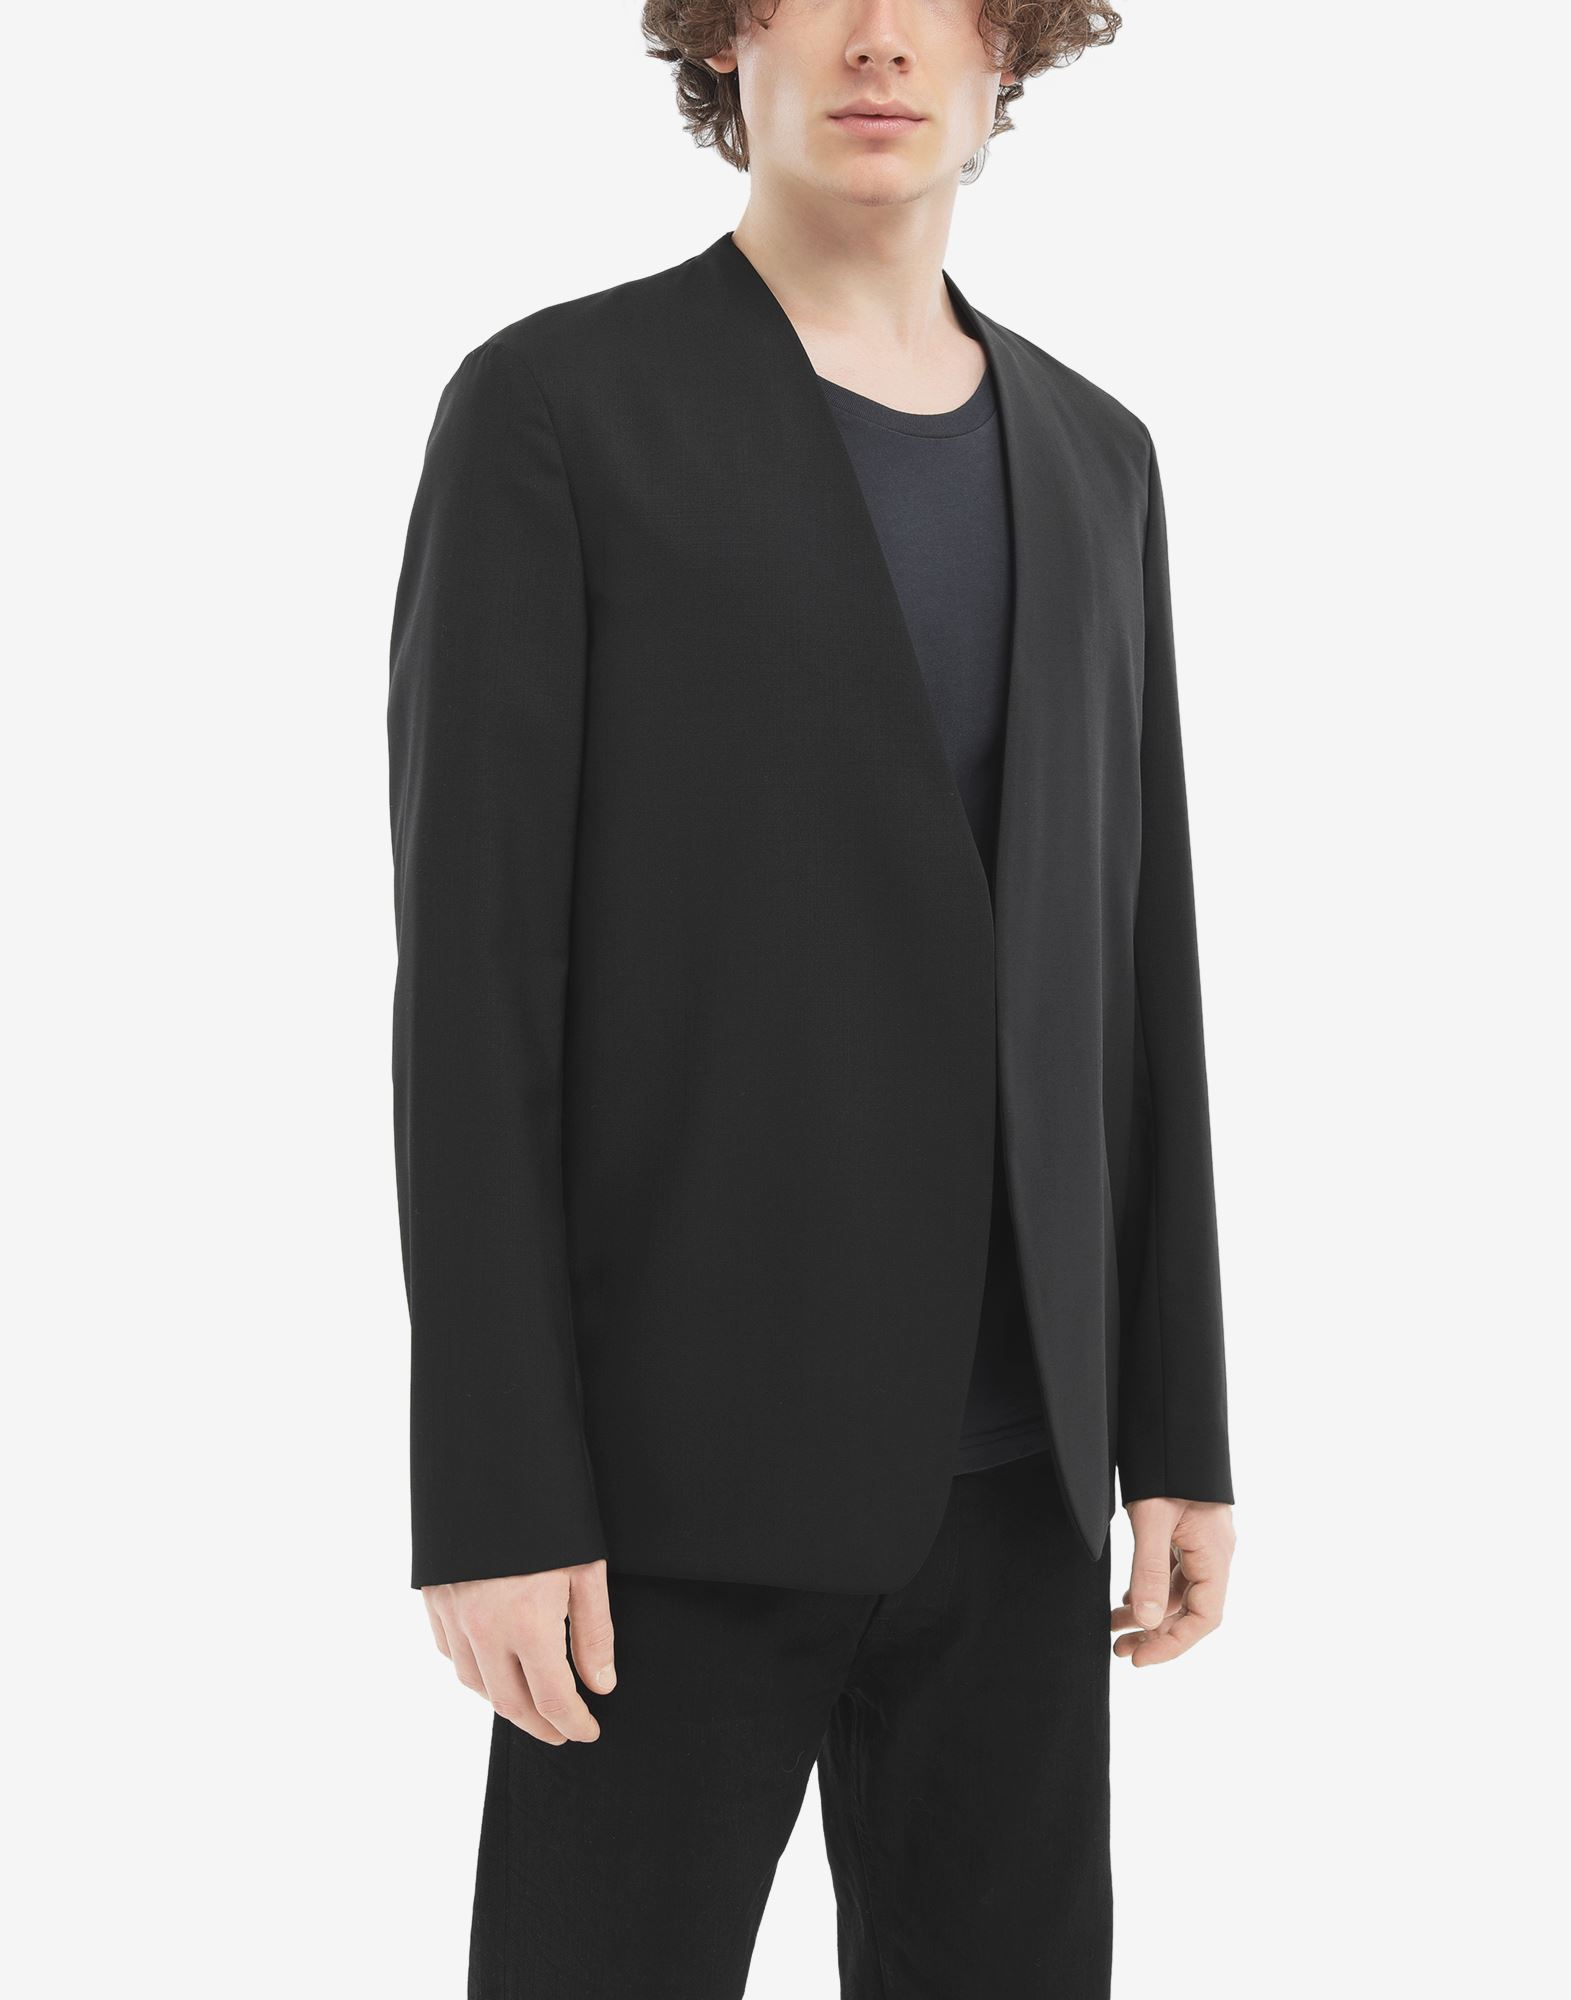 MAISON MARGIELA Collarless wool poplin jacket Blazer Man r